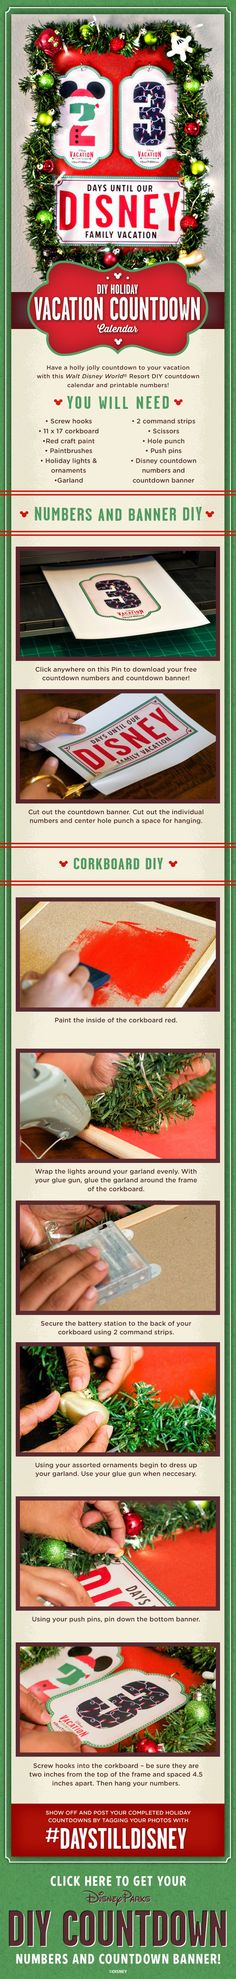 Visiting a Disney Park for Christmas? Create your DIY Vacation Countdown! Vacation Countdown, Disney Countdown, Disneyland Vacation, Walt Disney World Vacations, Disney Trips, Countdown Ideas, Christmas Countdown, Disney Diy, Disney Crafts